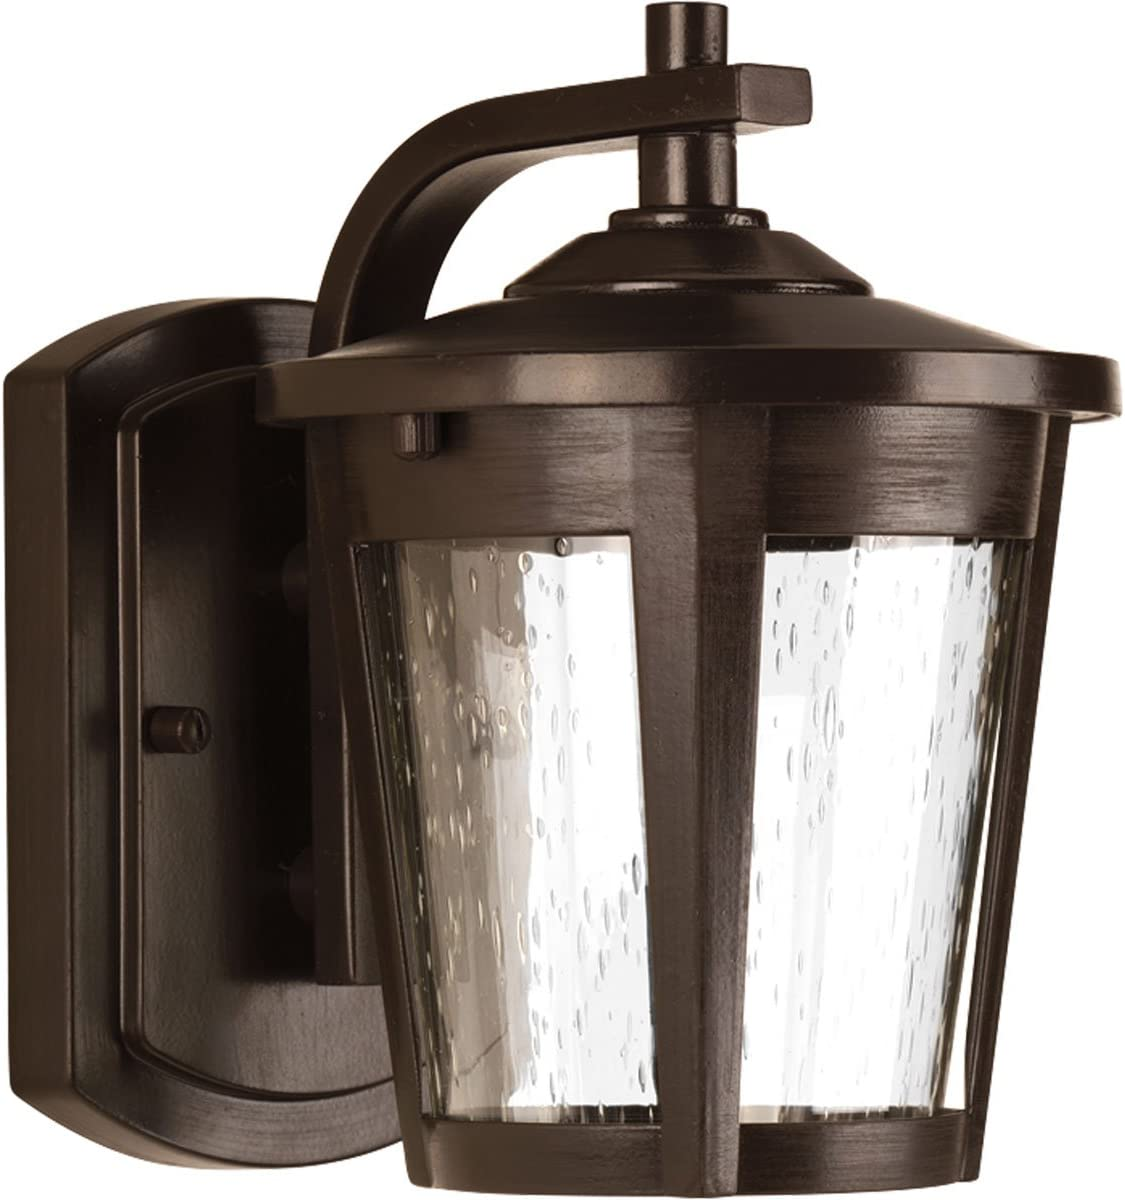 Progress Lighting P6077-2030K9 Transitional One Light Wall Lantern from East Haven Led Collection Dark Finish, Antique Bronze